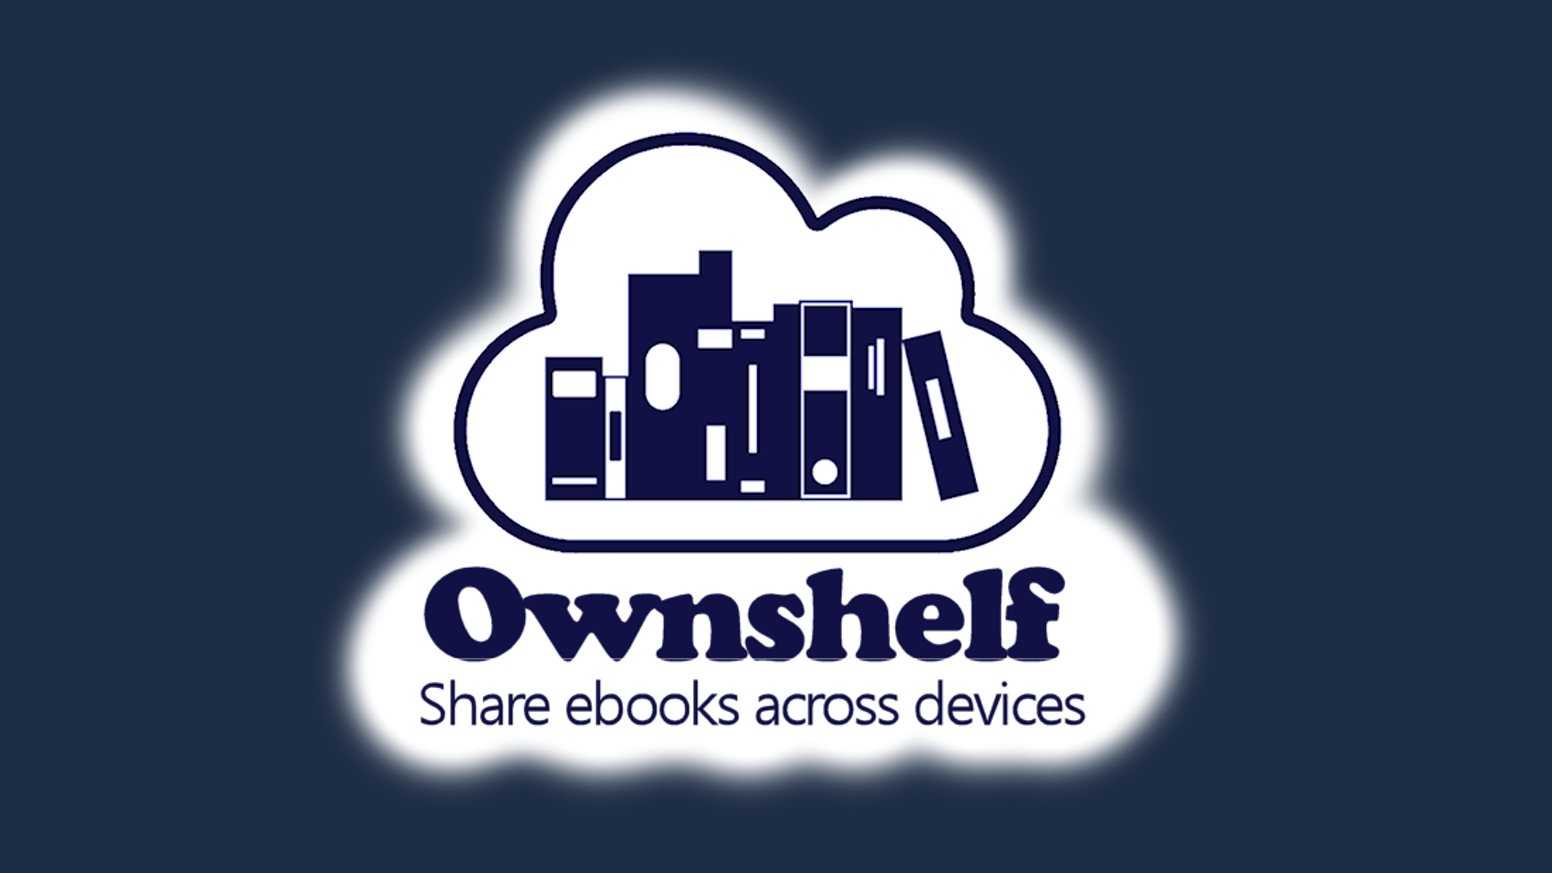 Ownshelf app for sharing ebooks with friends across devices by rick ownshelf app for sharing ebooks with friends across devices fandeluxe Gallery